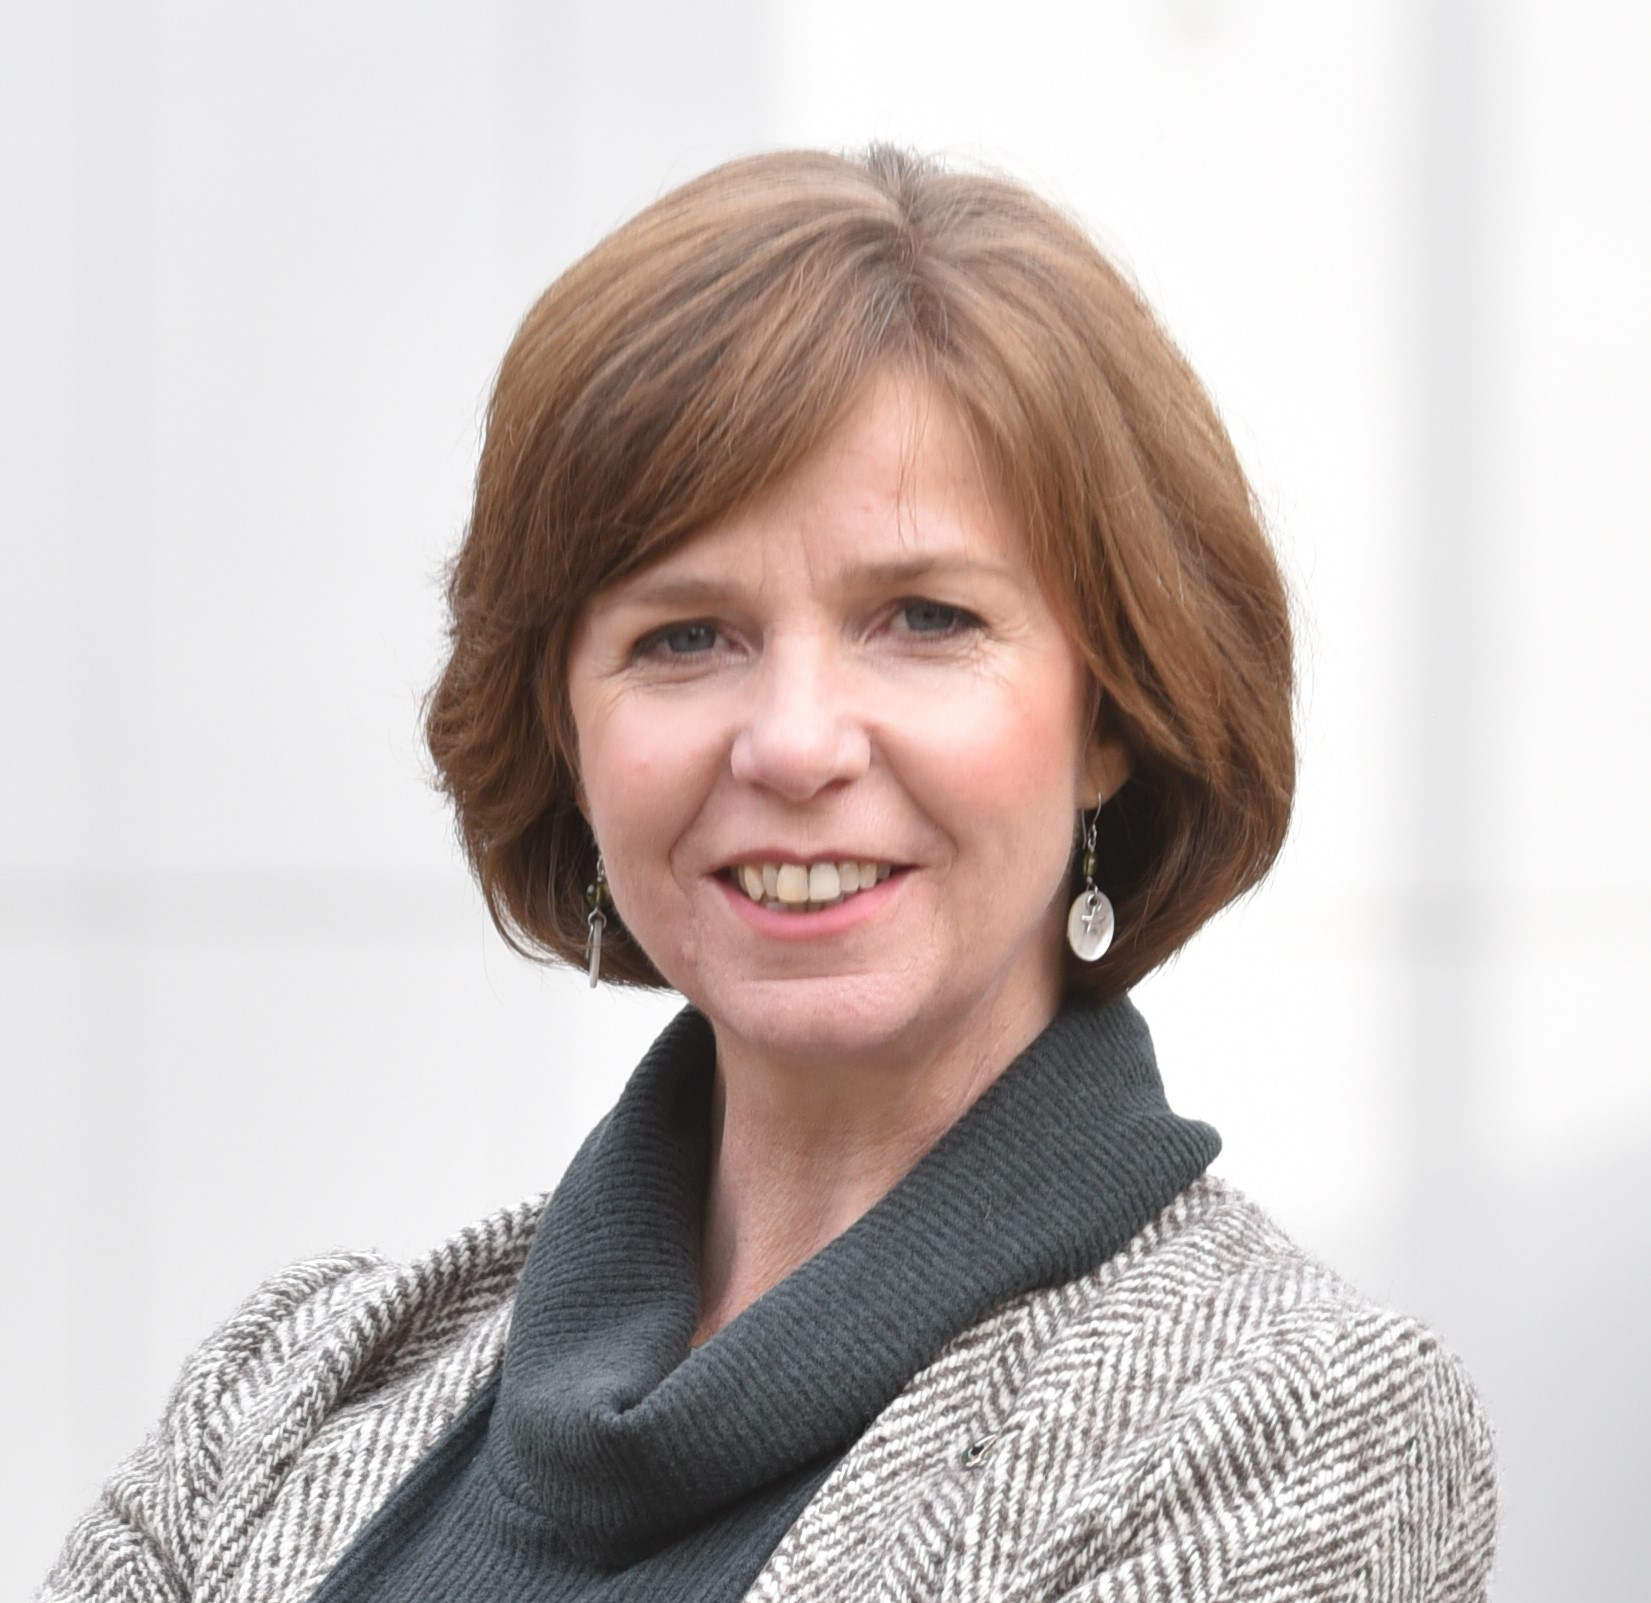 SHEILA MALCOLMSON | Parliamentary Secretary for Environment, Government of British Columbia